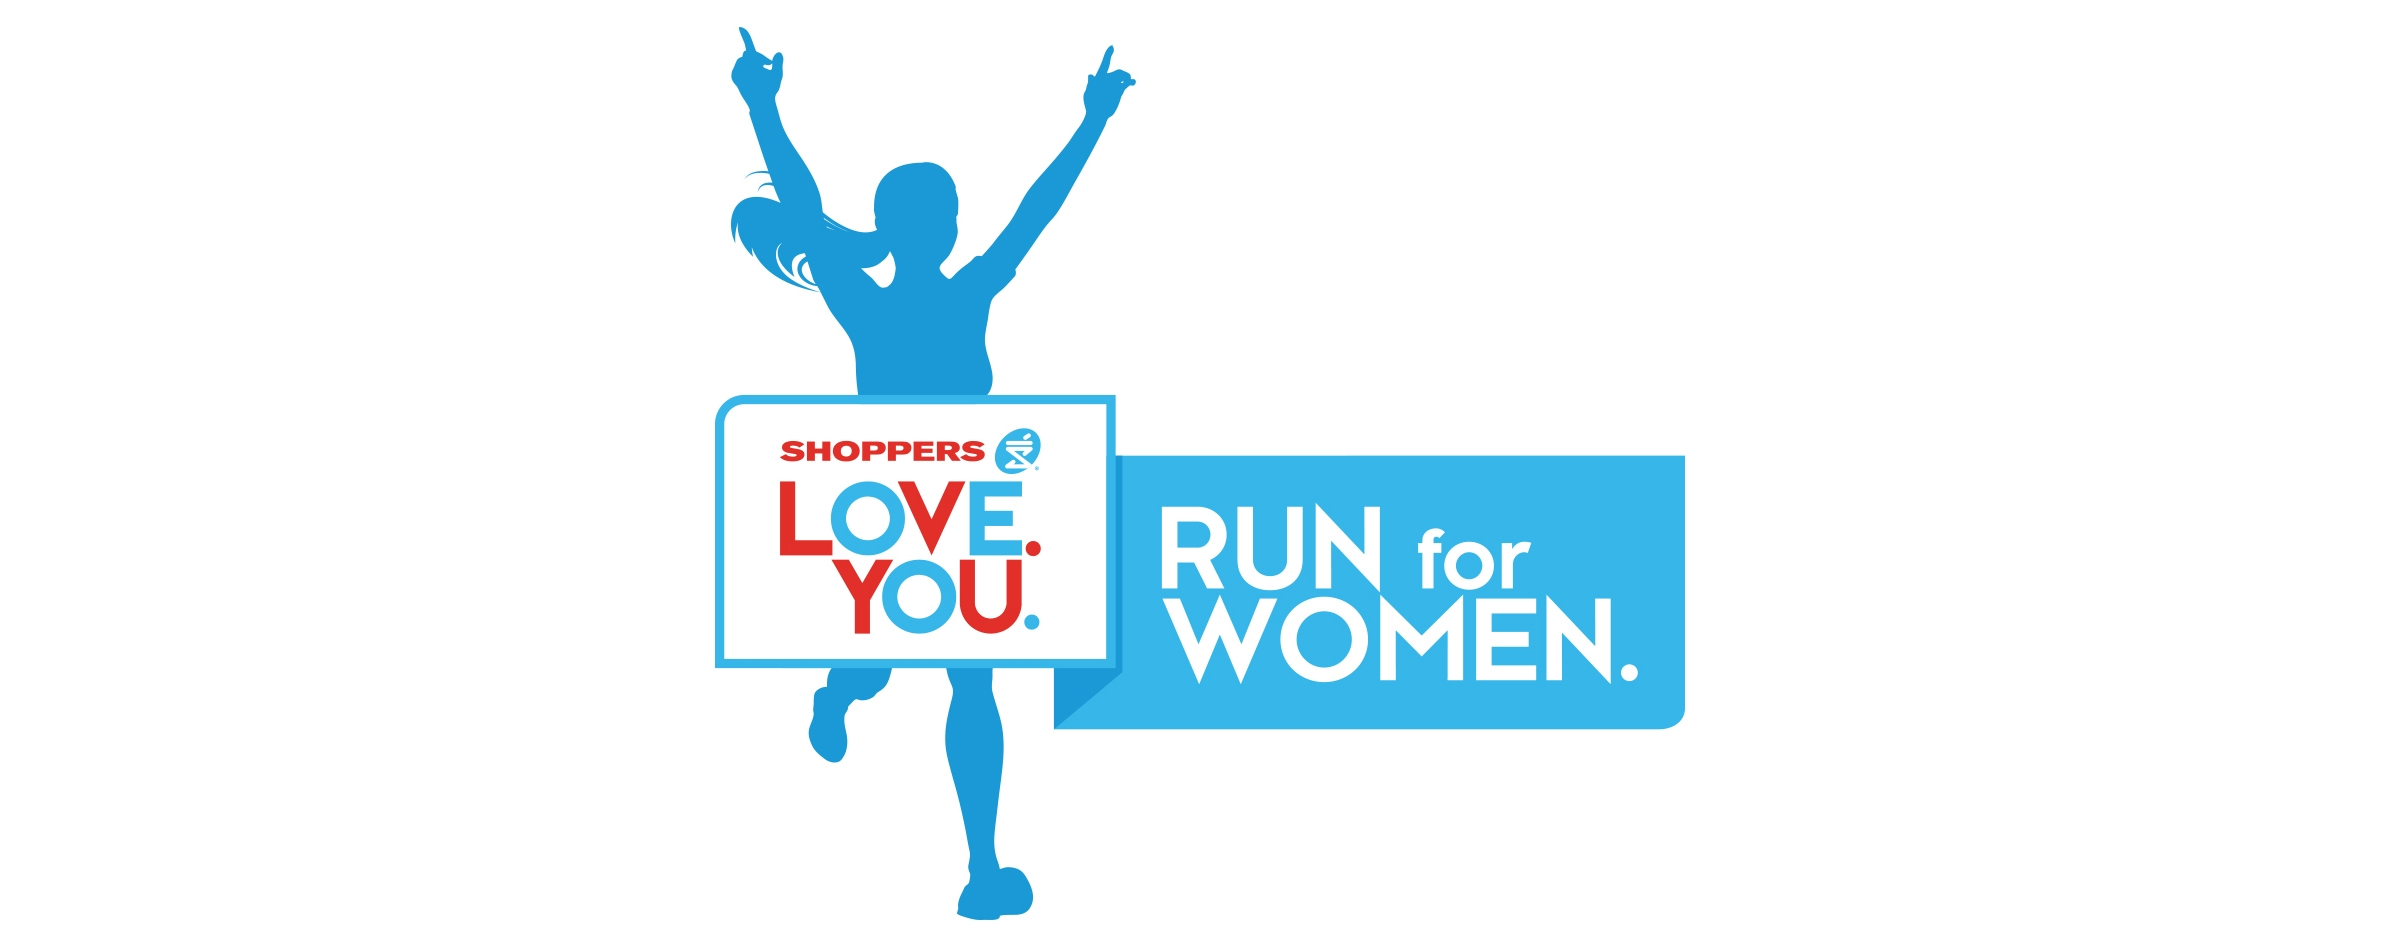 Shoppers LOVE.YOU. Run for Women.